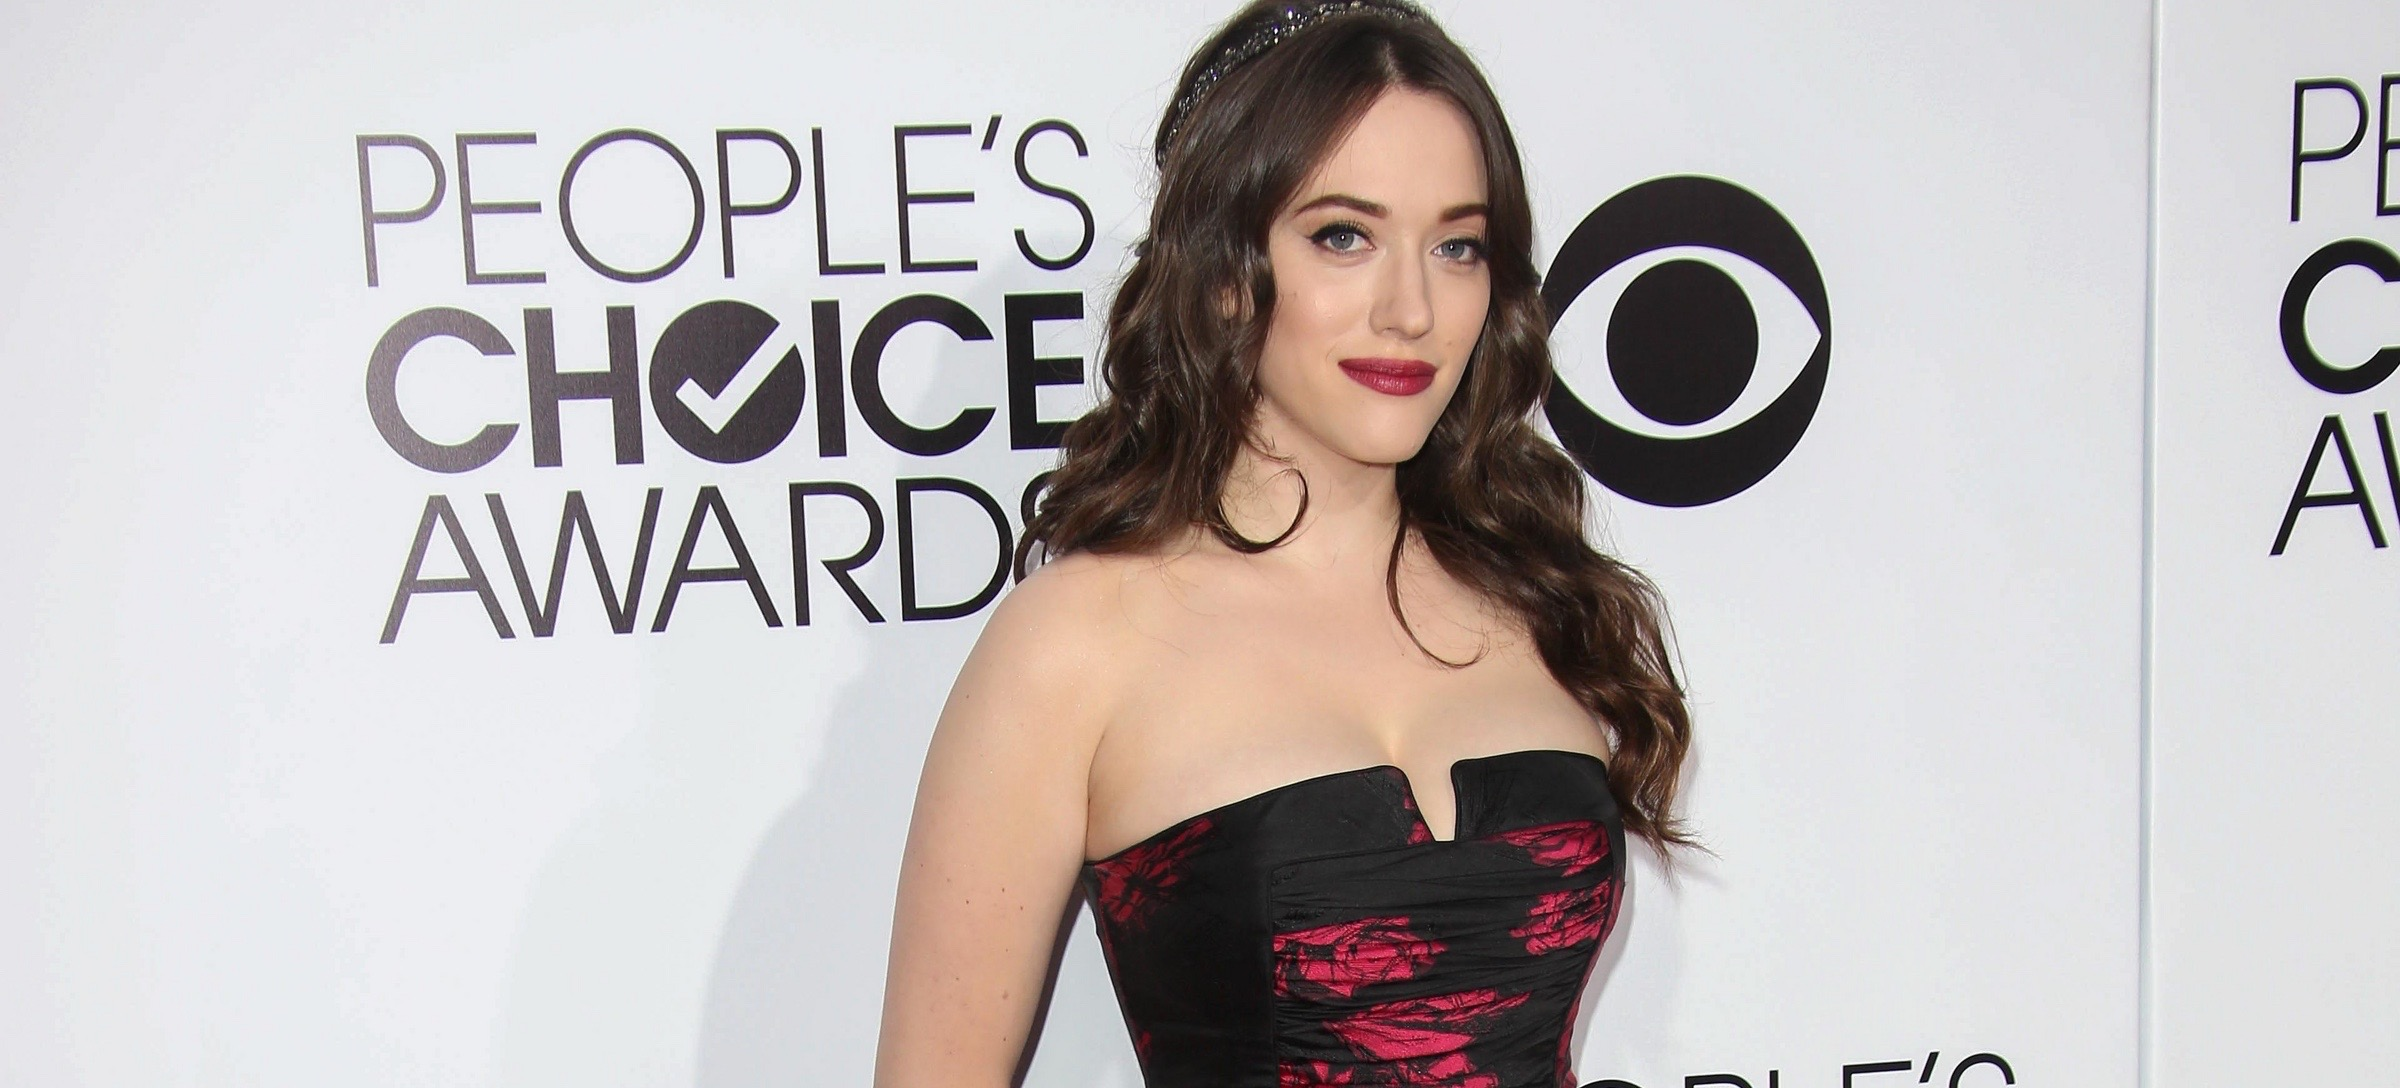 Exclusive: See Kat Dennings Transform Into Her Beauty Icons